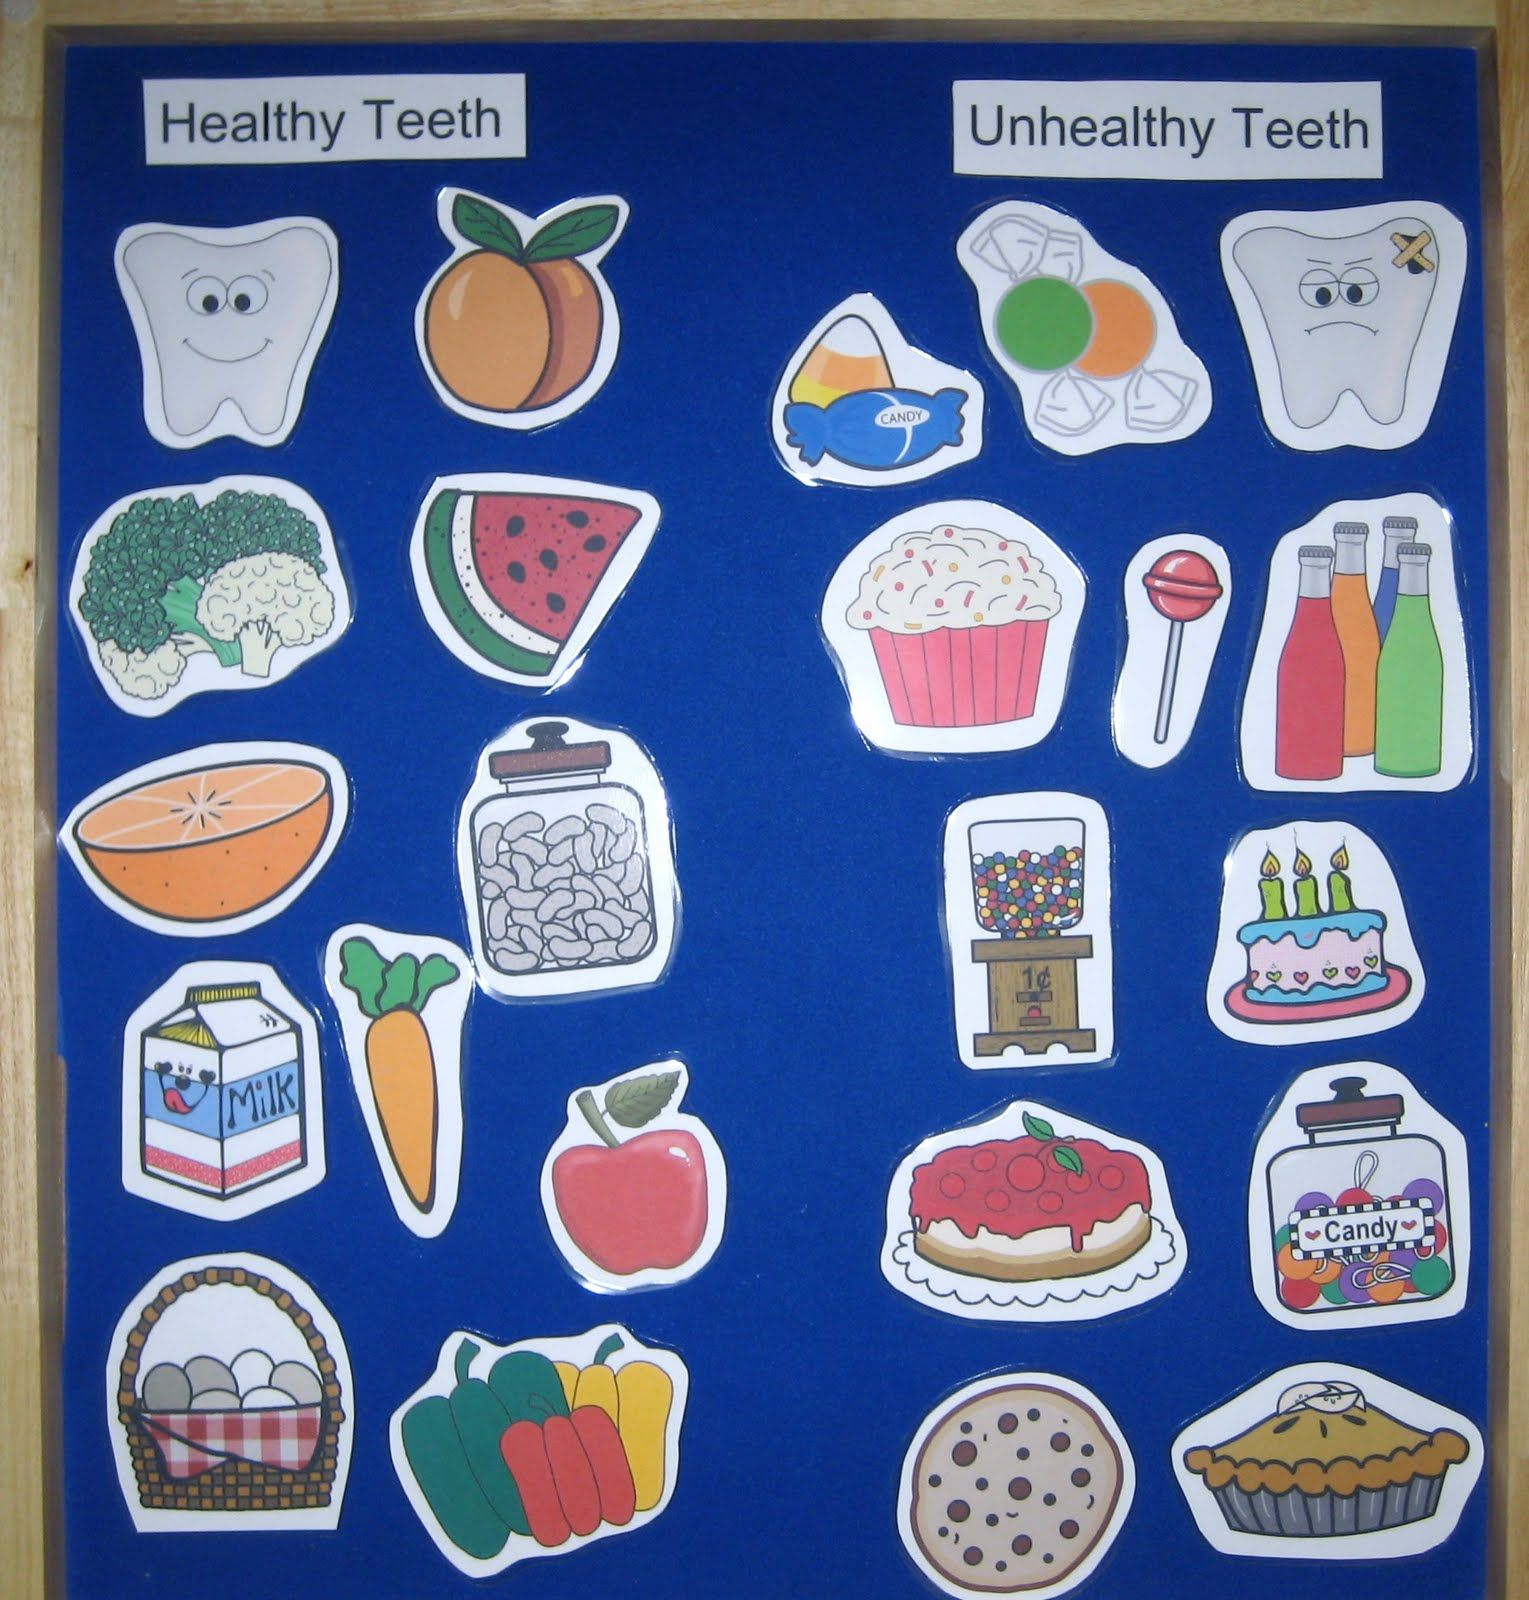 Healthy Food Vs Unhealthy Food Students Can Draw Picture Or Use Junk Mail To Show Food That